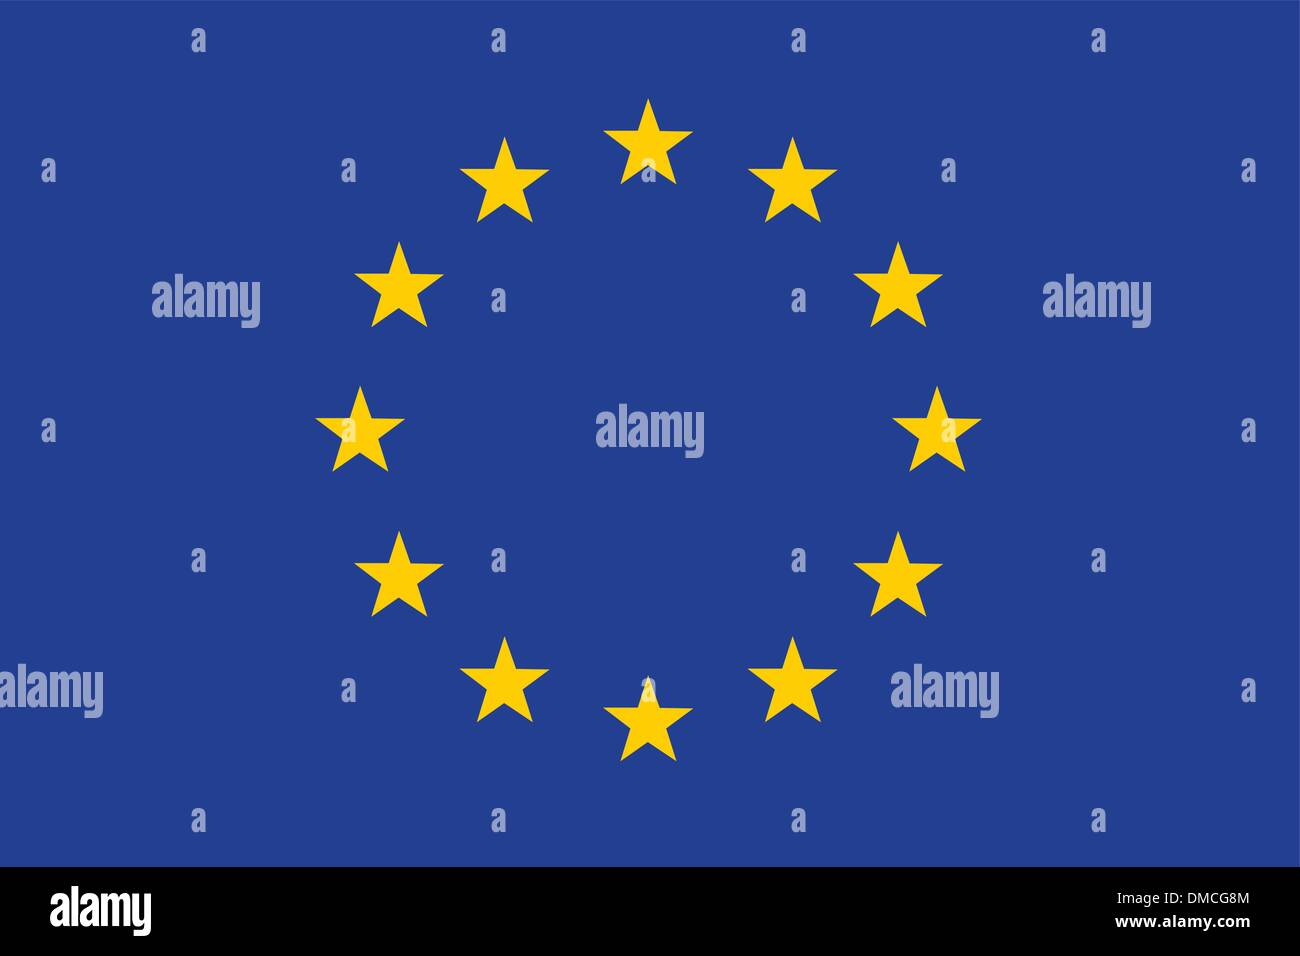 Flag of European Union - Stock Vector